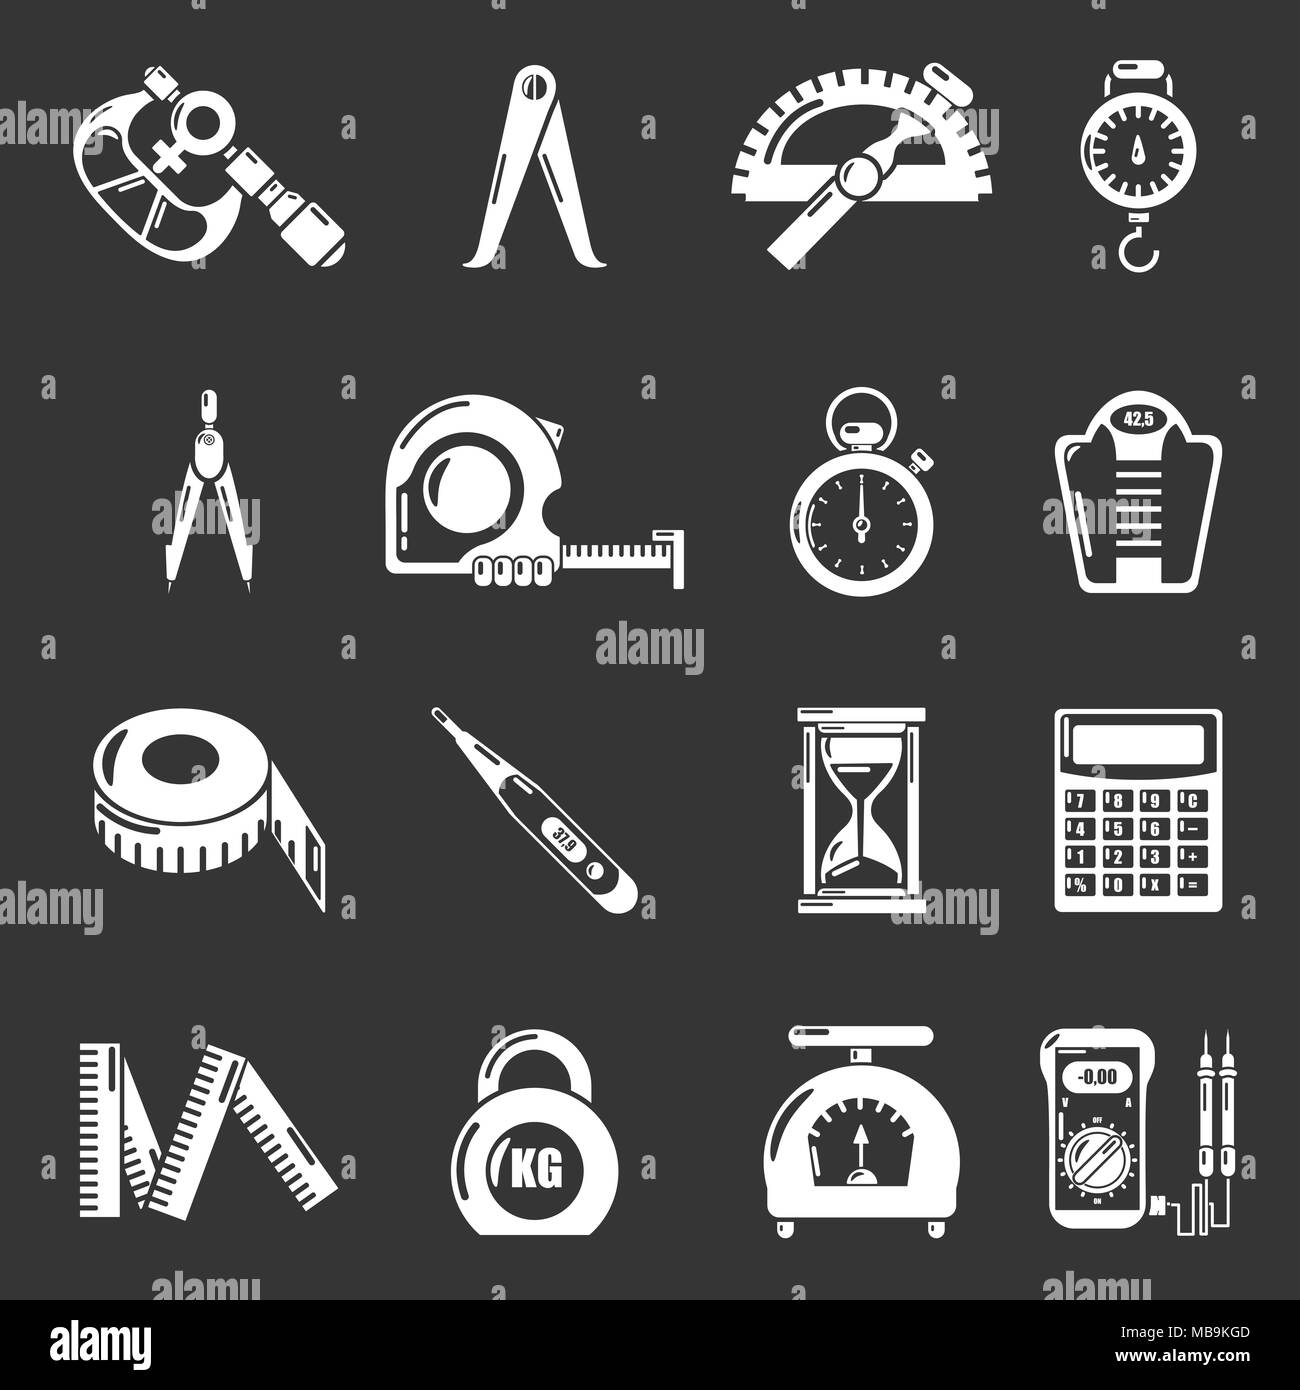 Measure precision icons set grey vector - Stock Image